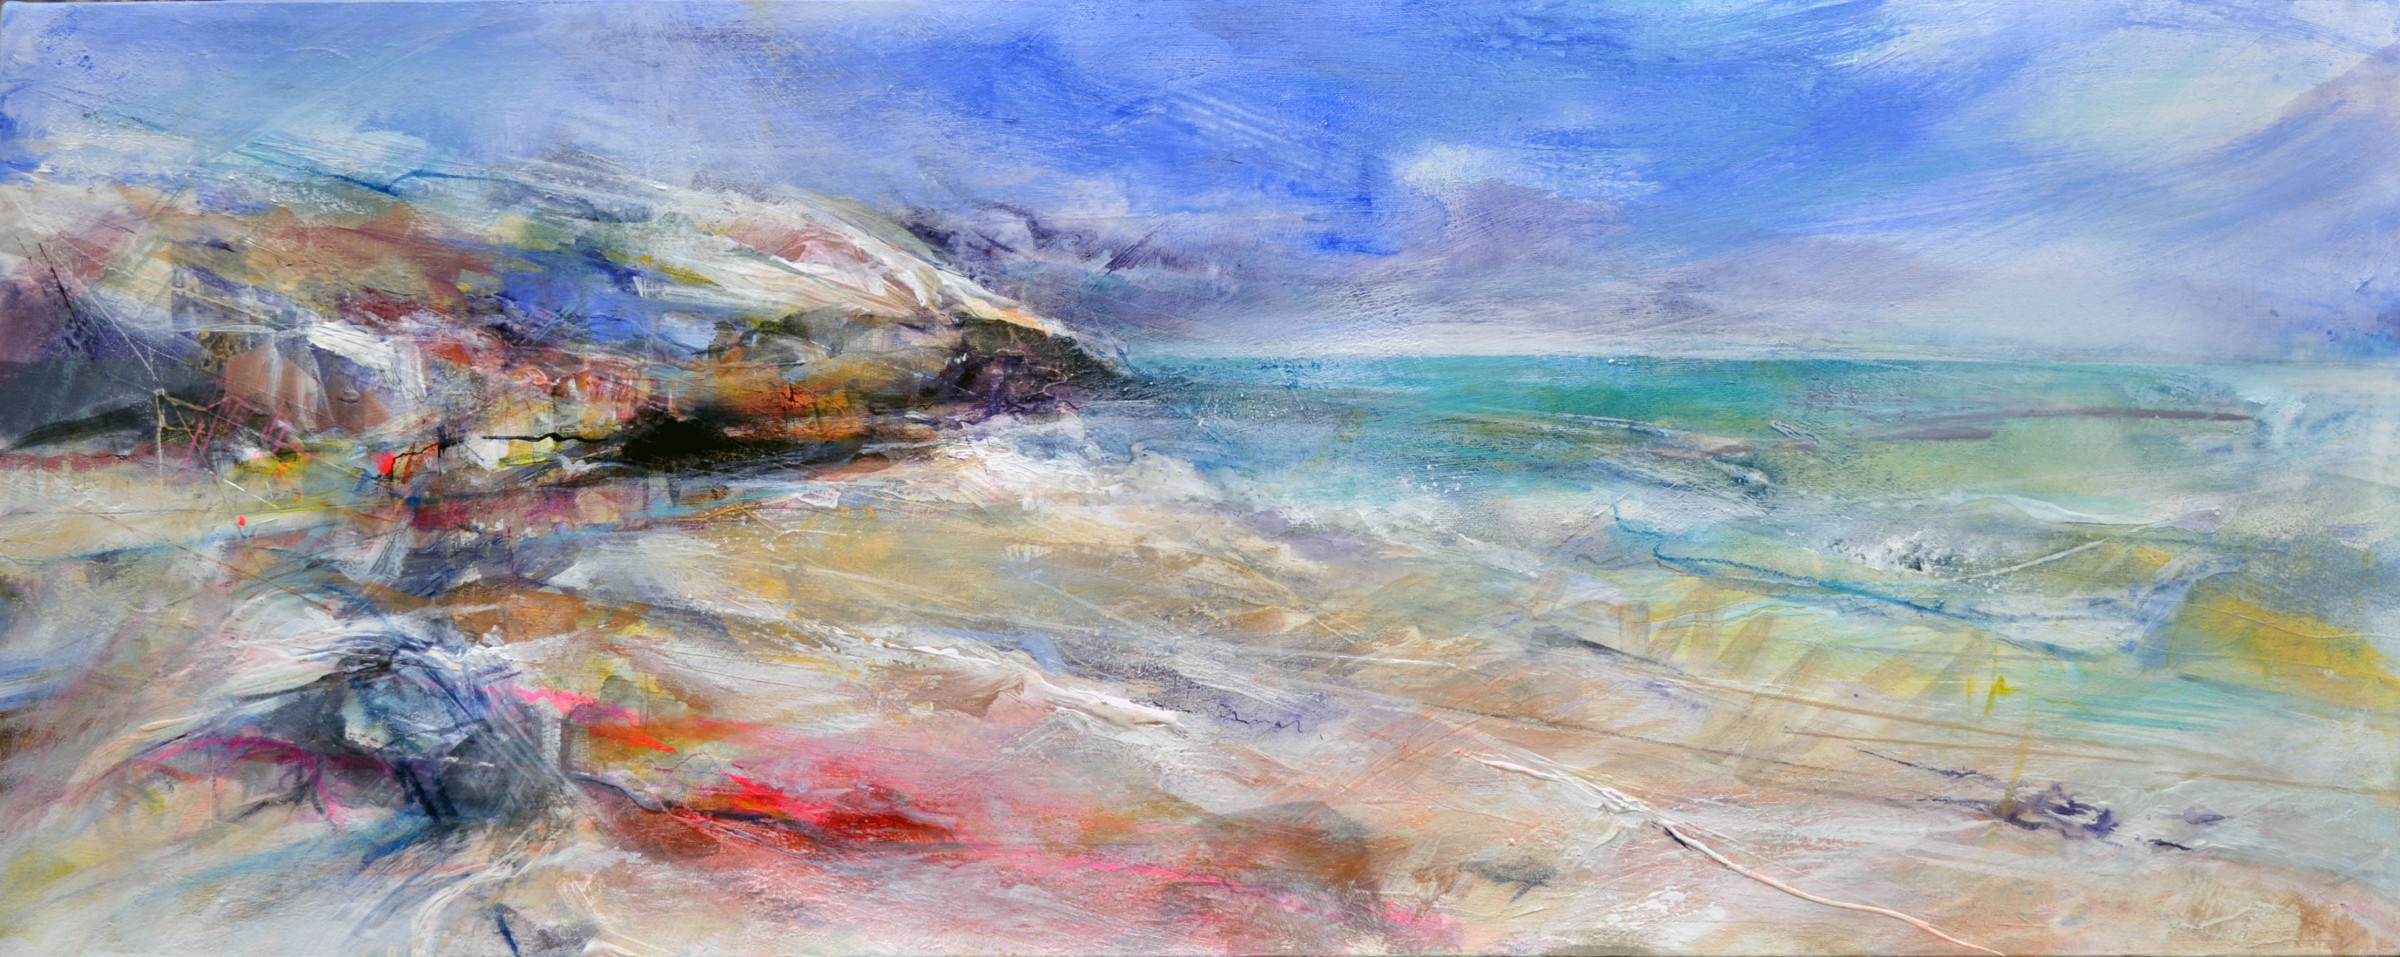 """<span class=""""link fancybox-details-link""""><a href=""""/artists/90-freya-horsley/works/4166-freya-horsley-staying-out-2017/"""">View Detail Page</a></span><div class=""""artist""""><strong>Freya Horsley</strong></div> <div class=""""title""""><em>Staying Out</em>, 2017</div> <div class=""""signed_and_dated"""">signed on reverse</div> <div class=""""medium"""">mixed media on canvas</div> <div class=""""dimensions"""">40 x 100 cm<br /> 15 3/4 x 39 3/8 inches</div><div class=""""copyright_line"""">OwnArt: £ 88 x 10 Months, 0% APR</div>"""